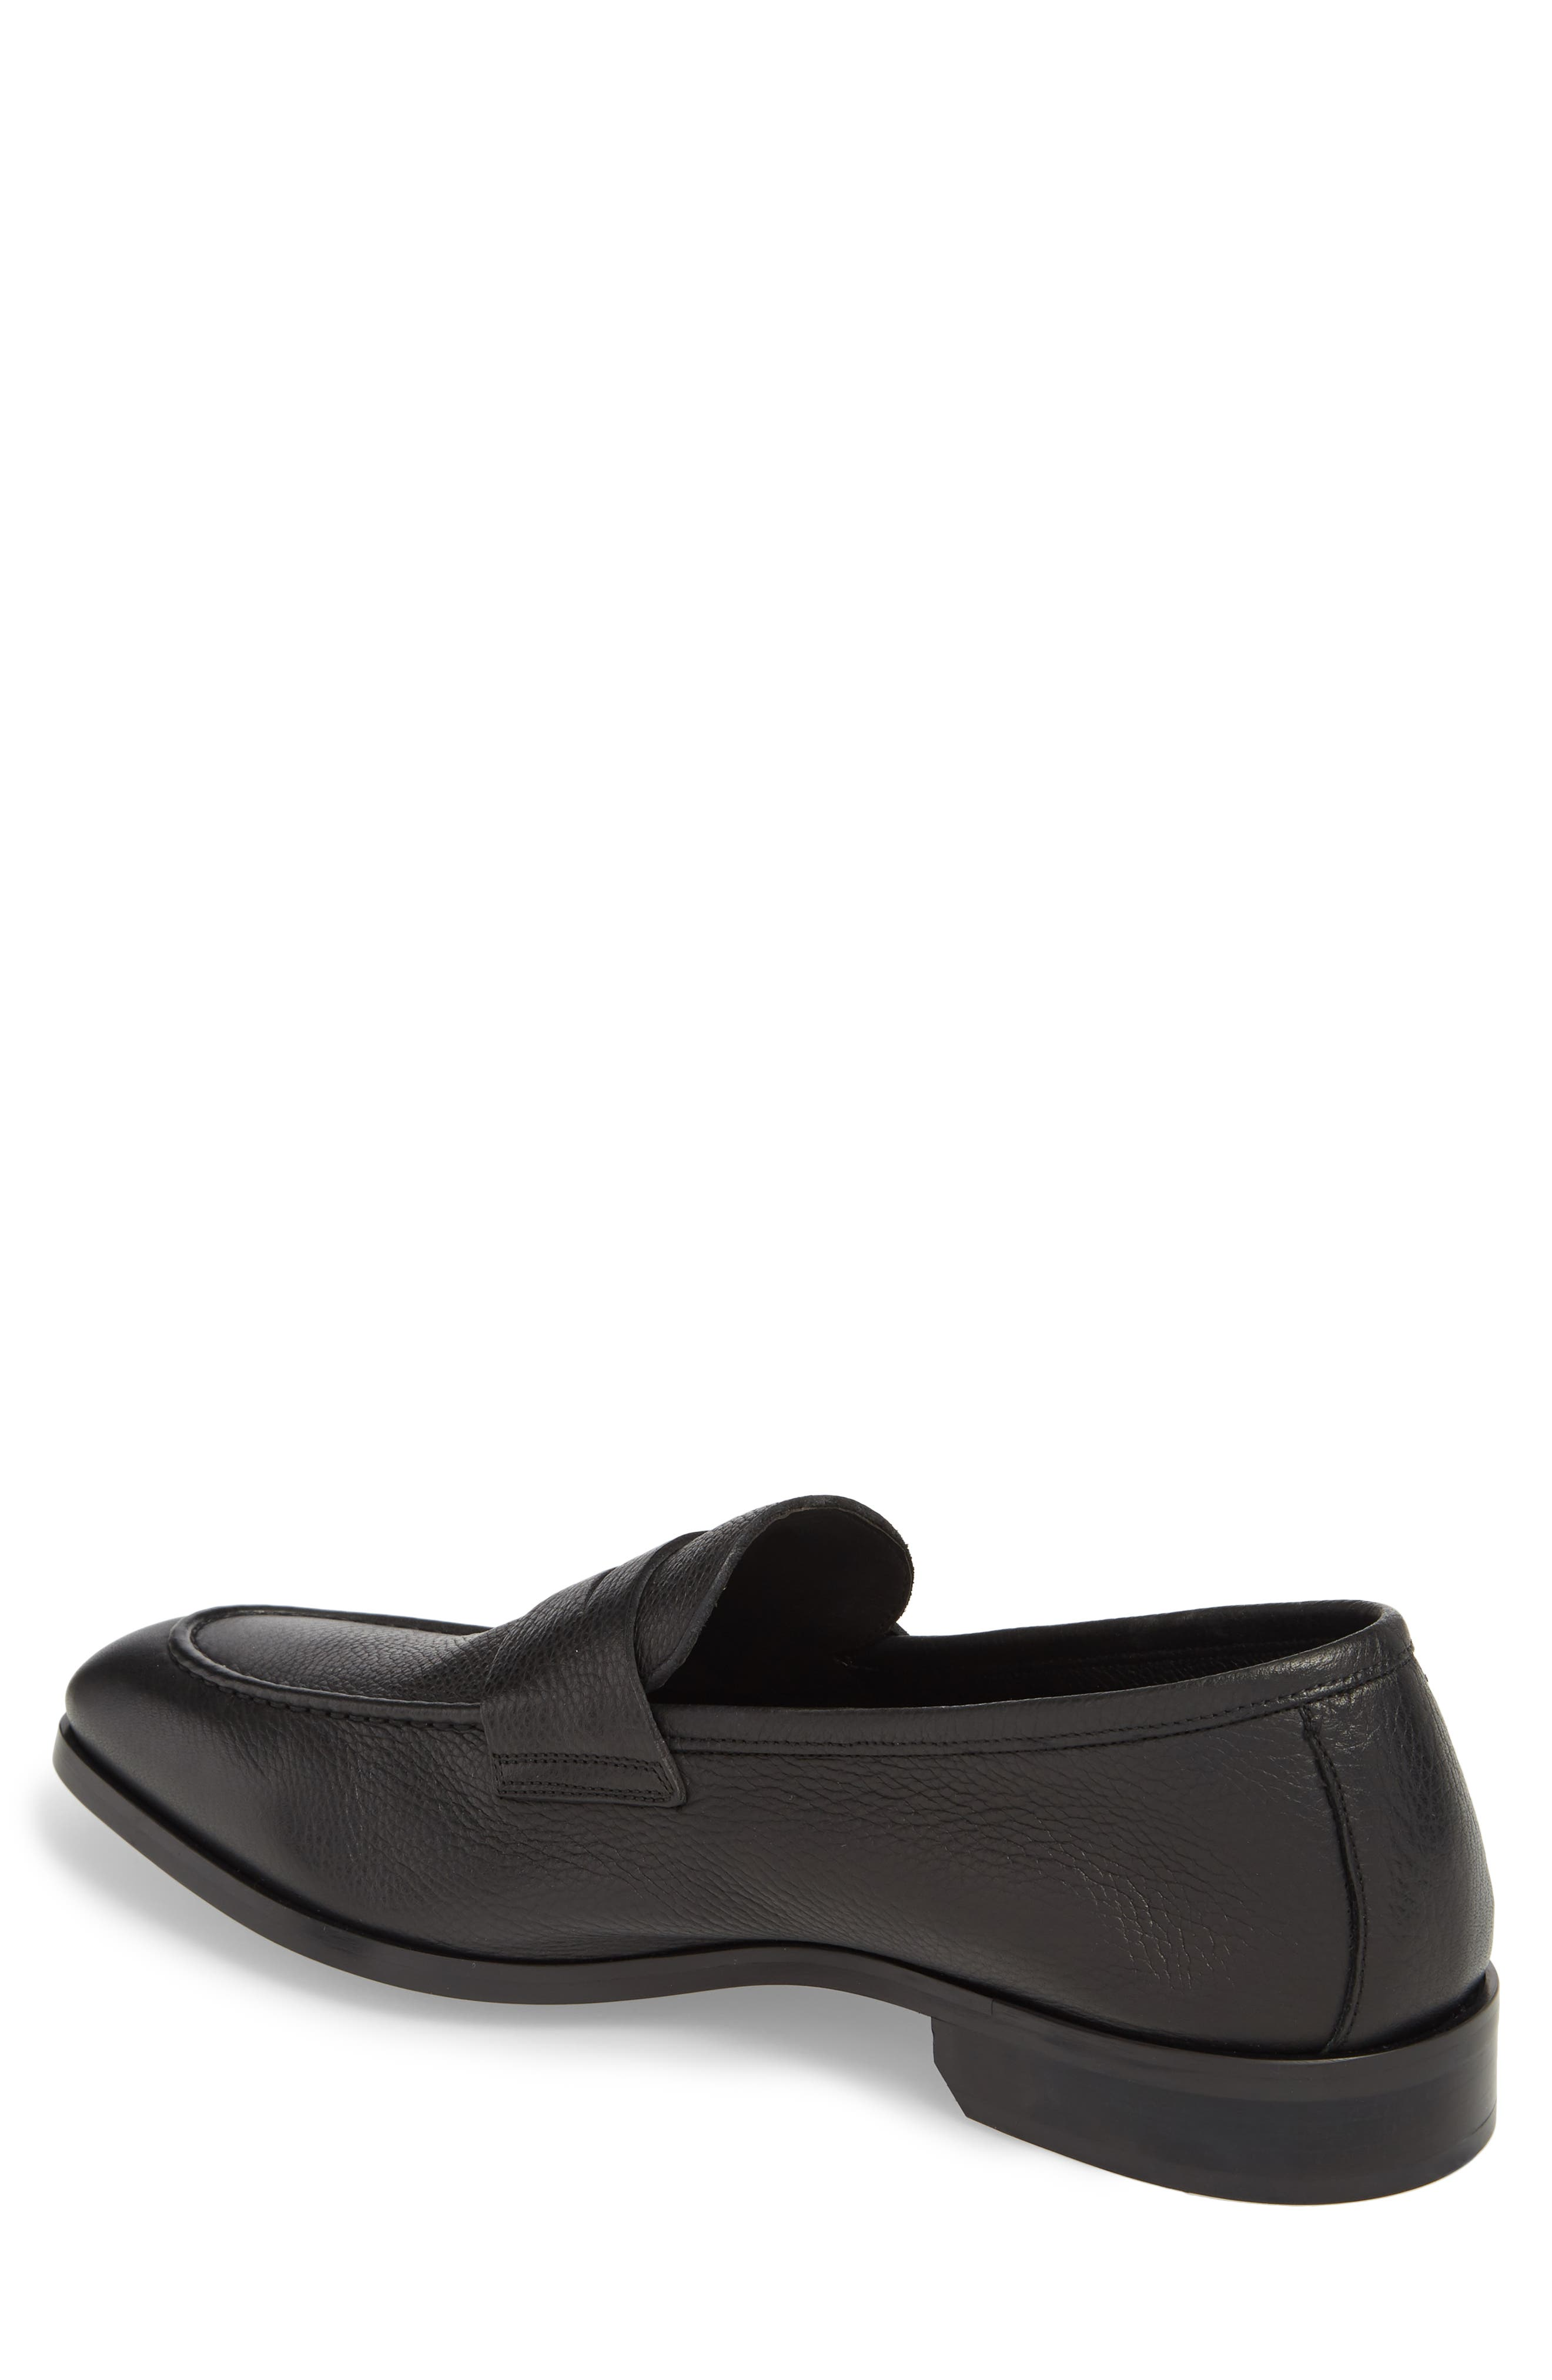 TO BOOT NEW YORK,                             Johnson Penny Loafer,                             Alternate thumbnail 2, color,                             BLACK PEBBLED LEATHER